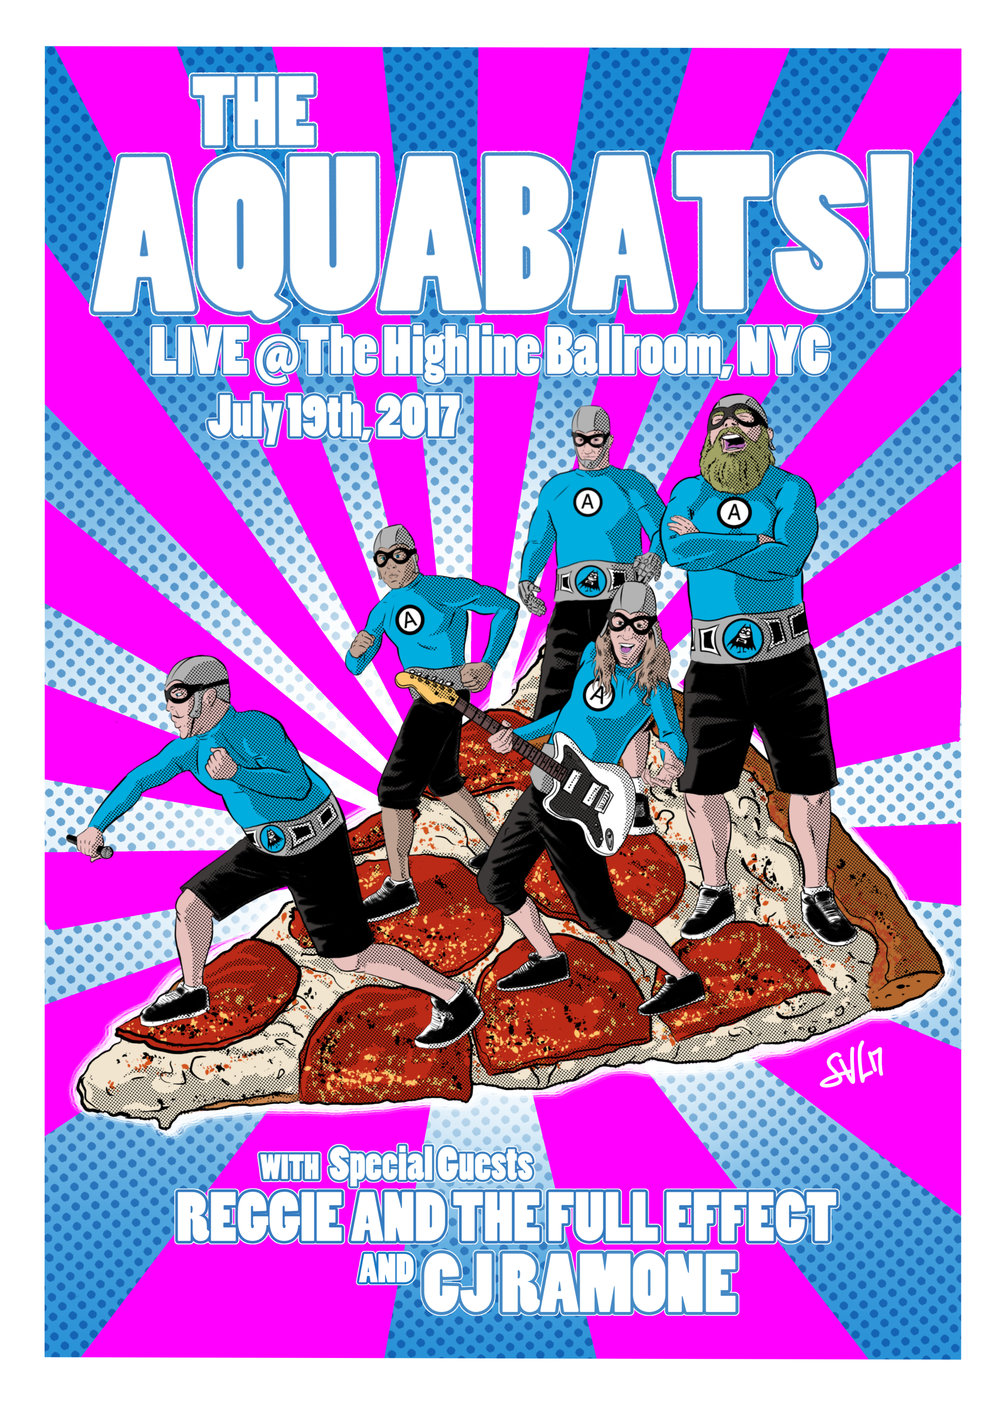 Aquabats Pizza Poster.jpg